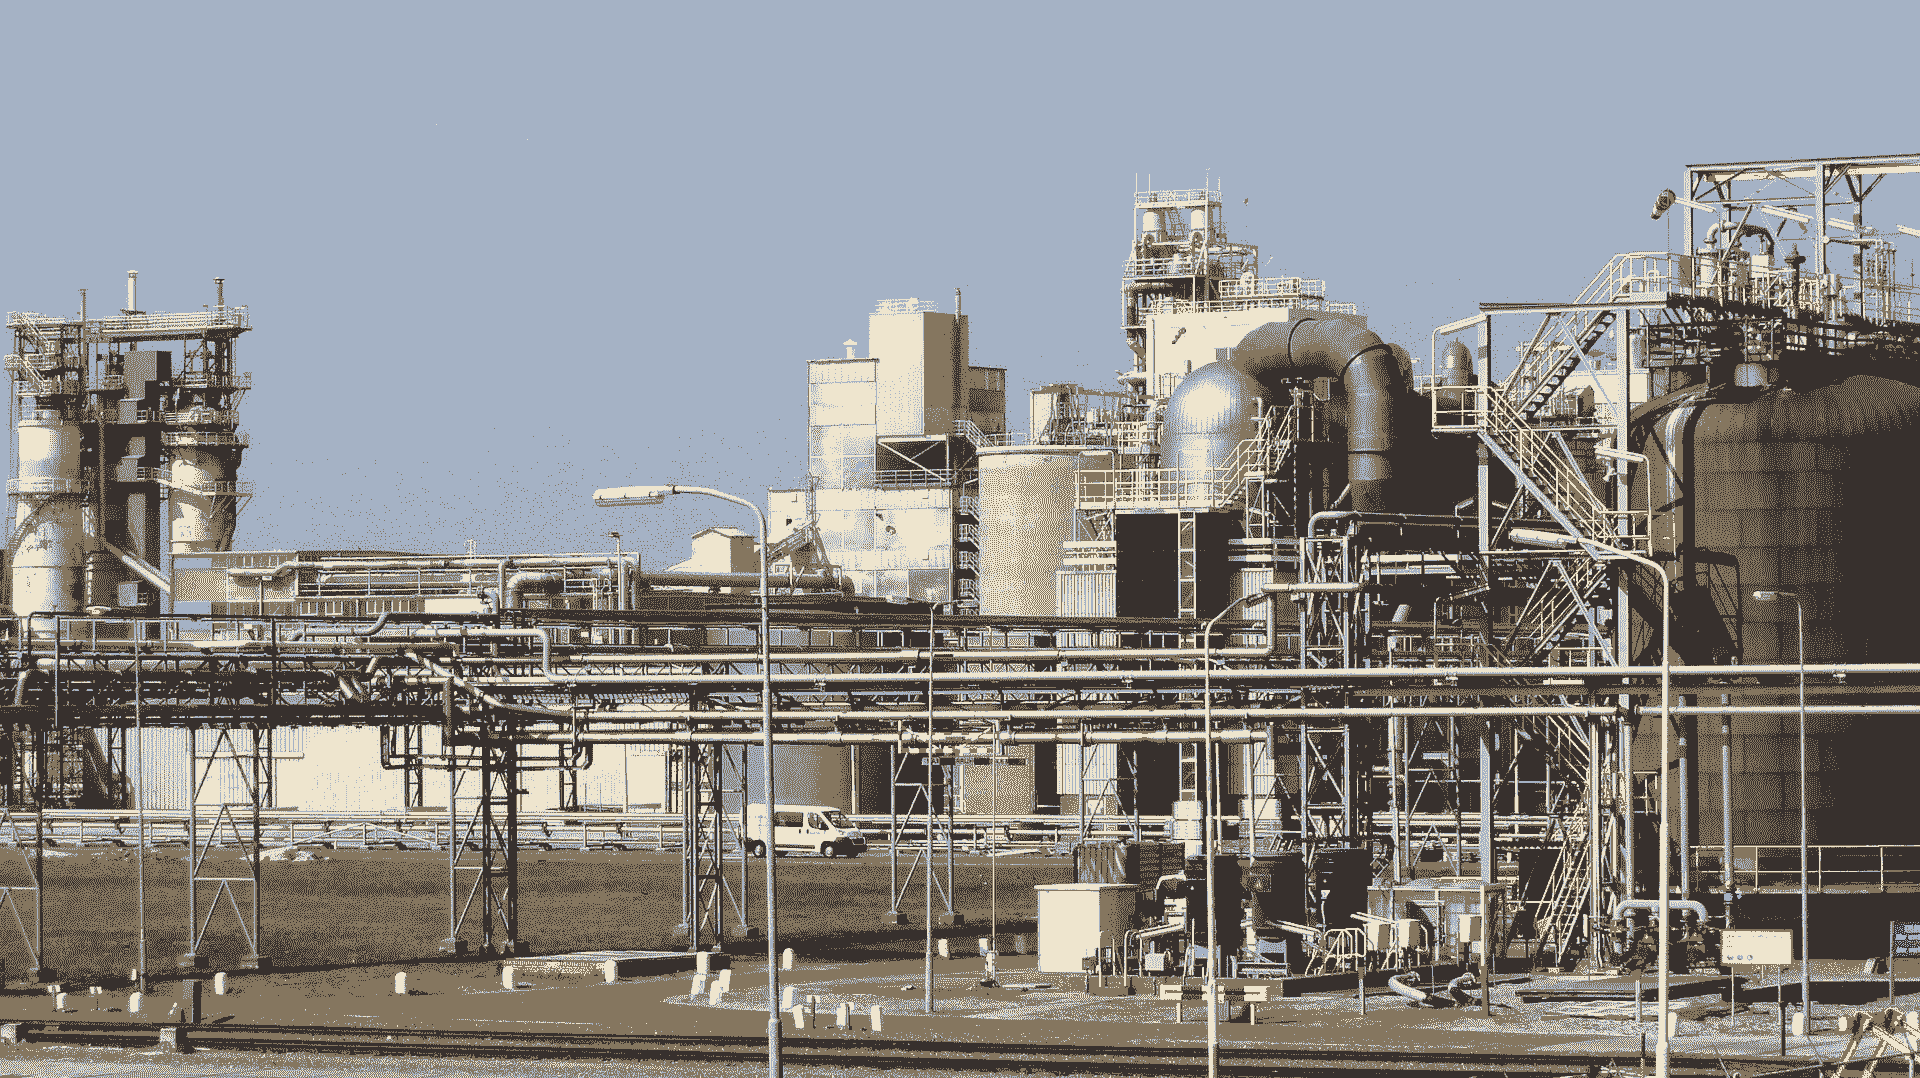 Intrinsic Safety - All about Explosion Protection using Intrinsically Safe devices